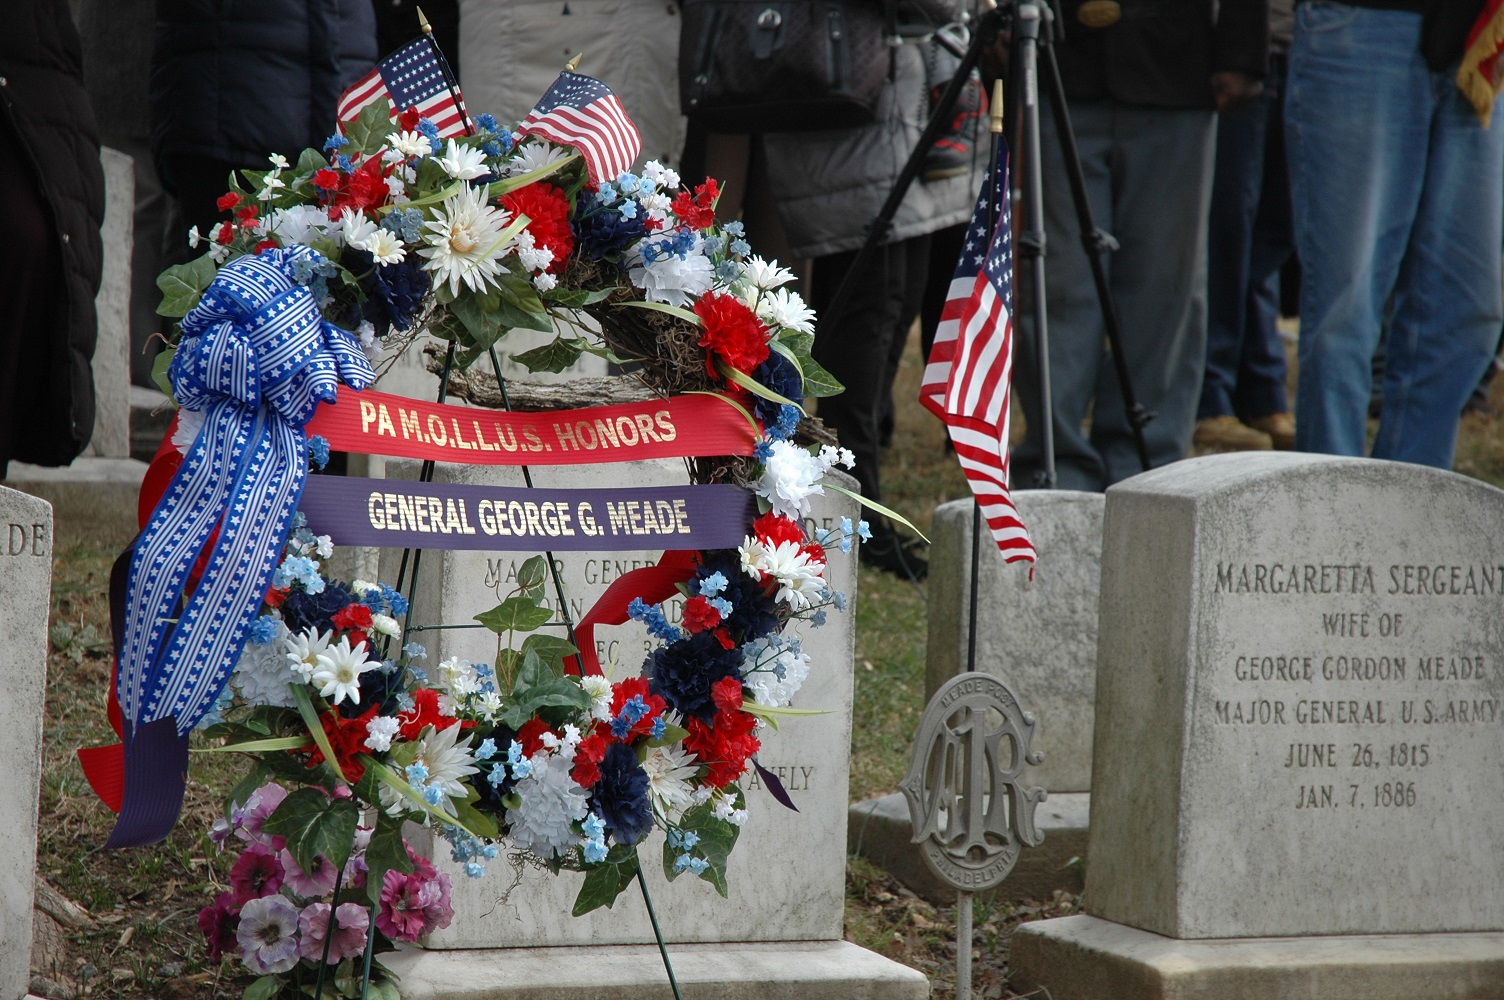 Happy 199th birthday general meade searching for george gordon meade a wreath at general meades gravesite from the 2013 birthday commemoration tom huntington photo izmirmasajfo